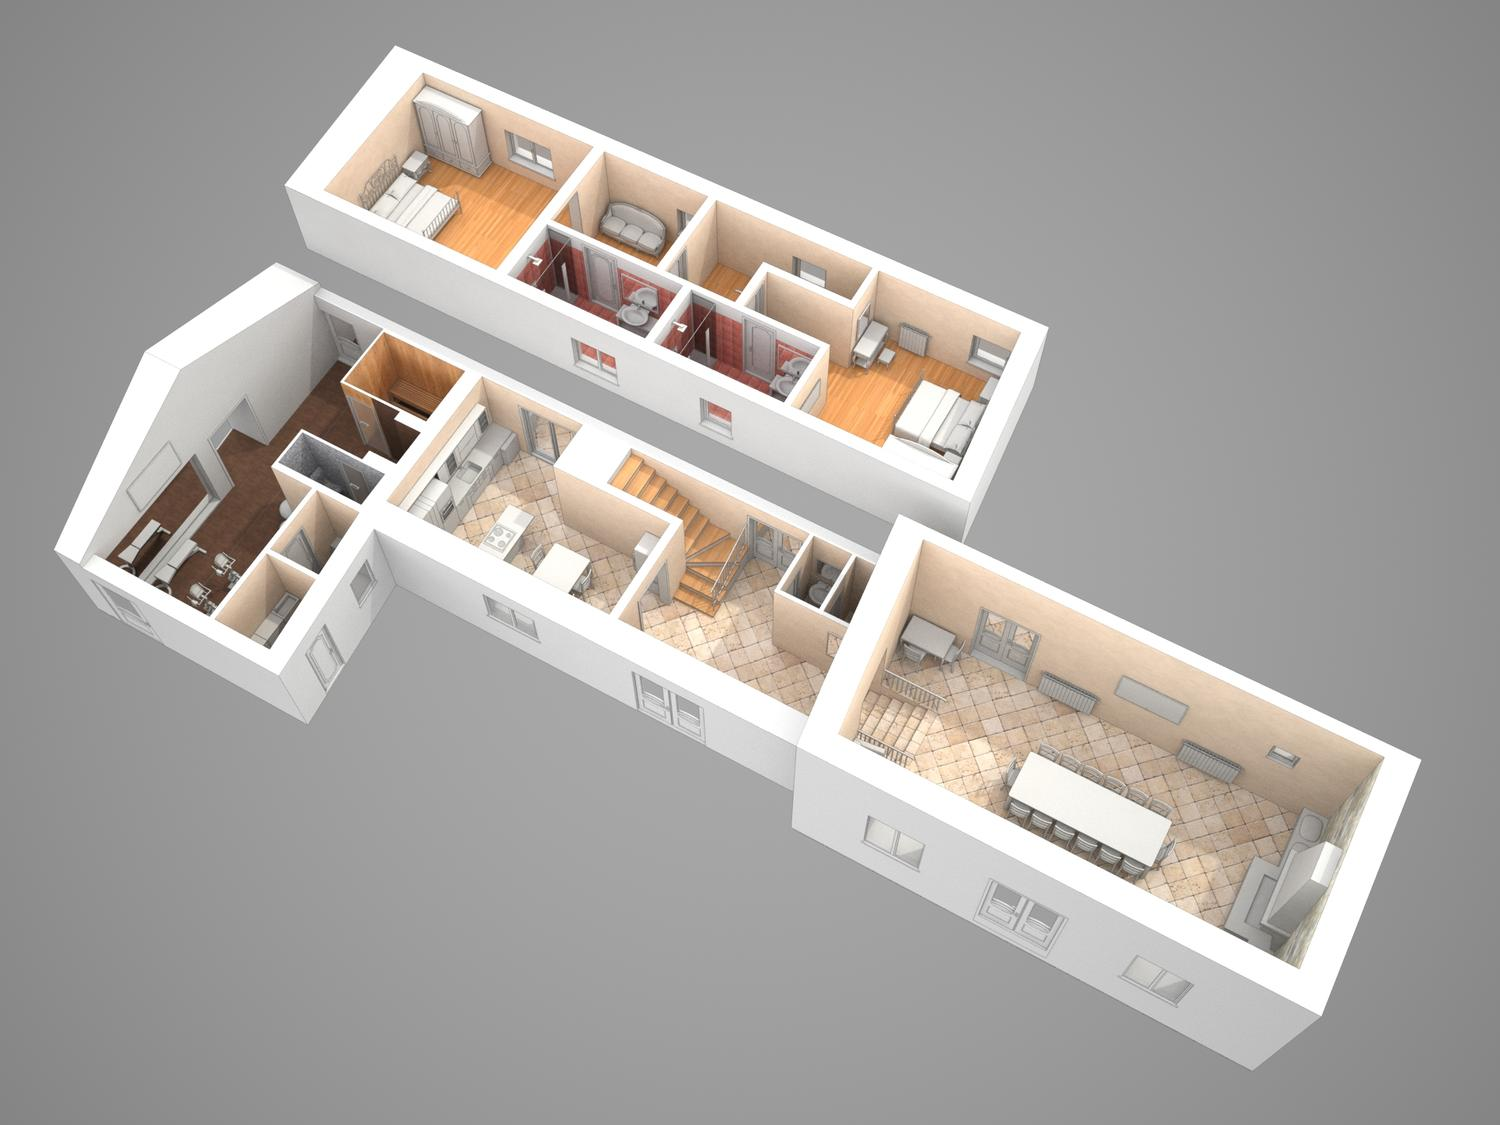 2D Floor Plan to 3D Visualization by tomislavn - 65441